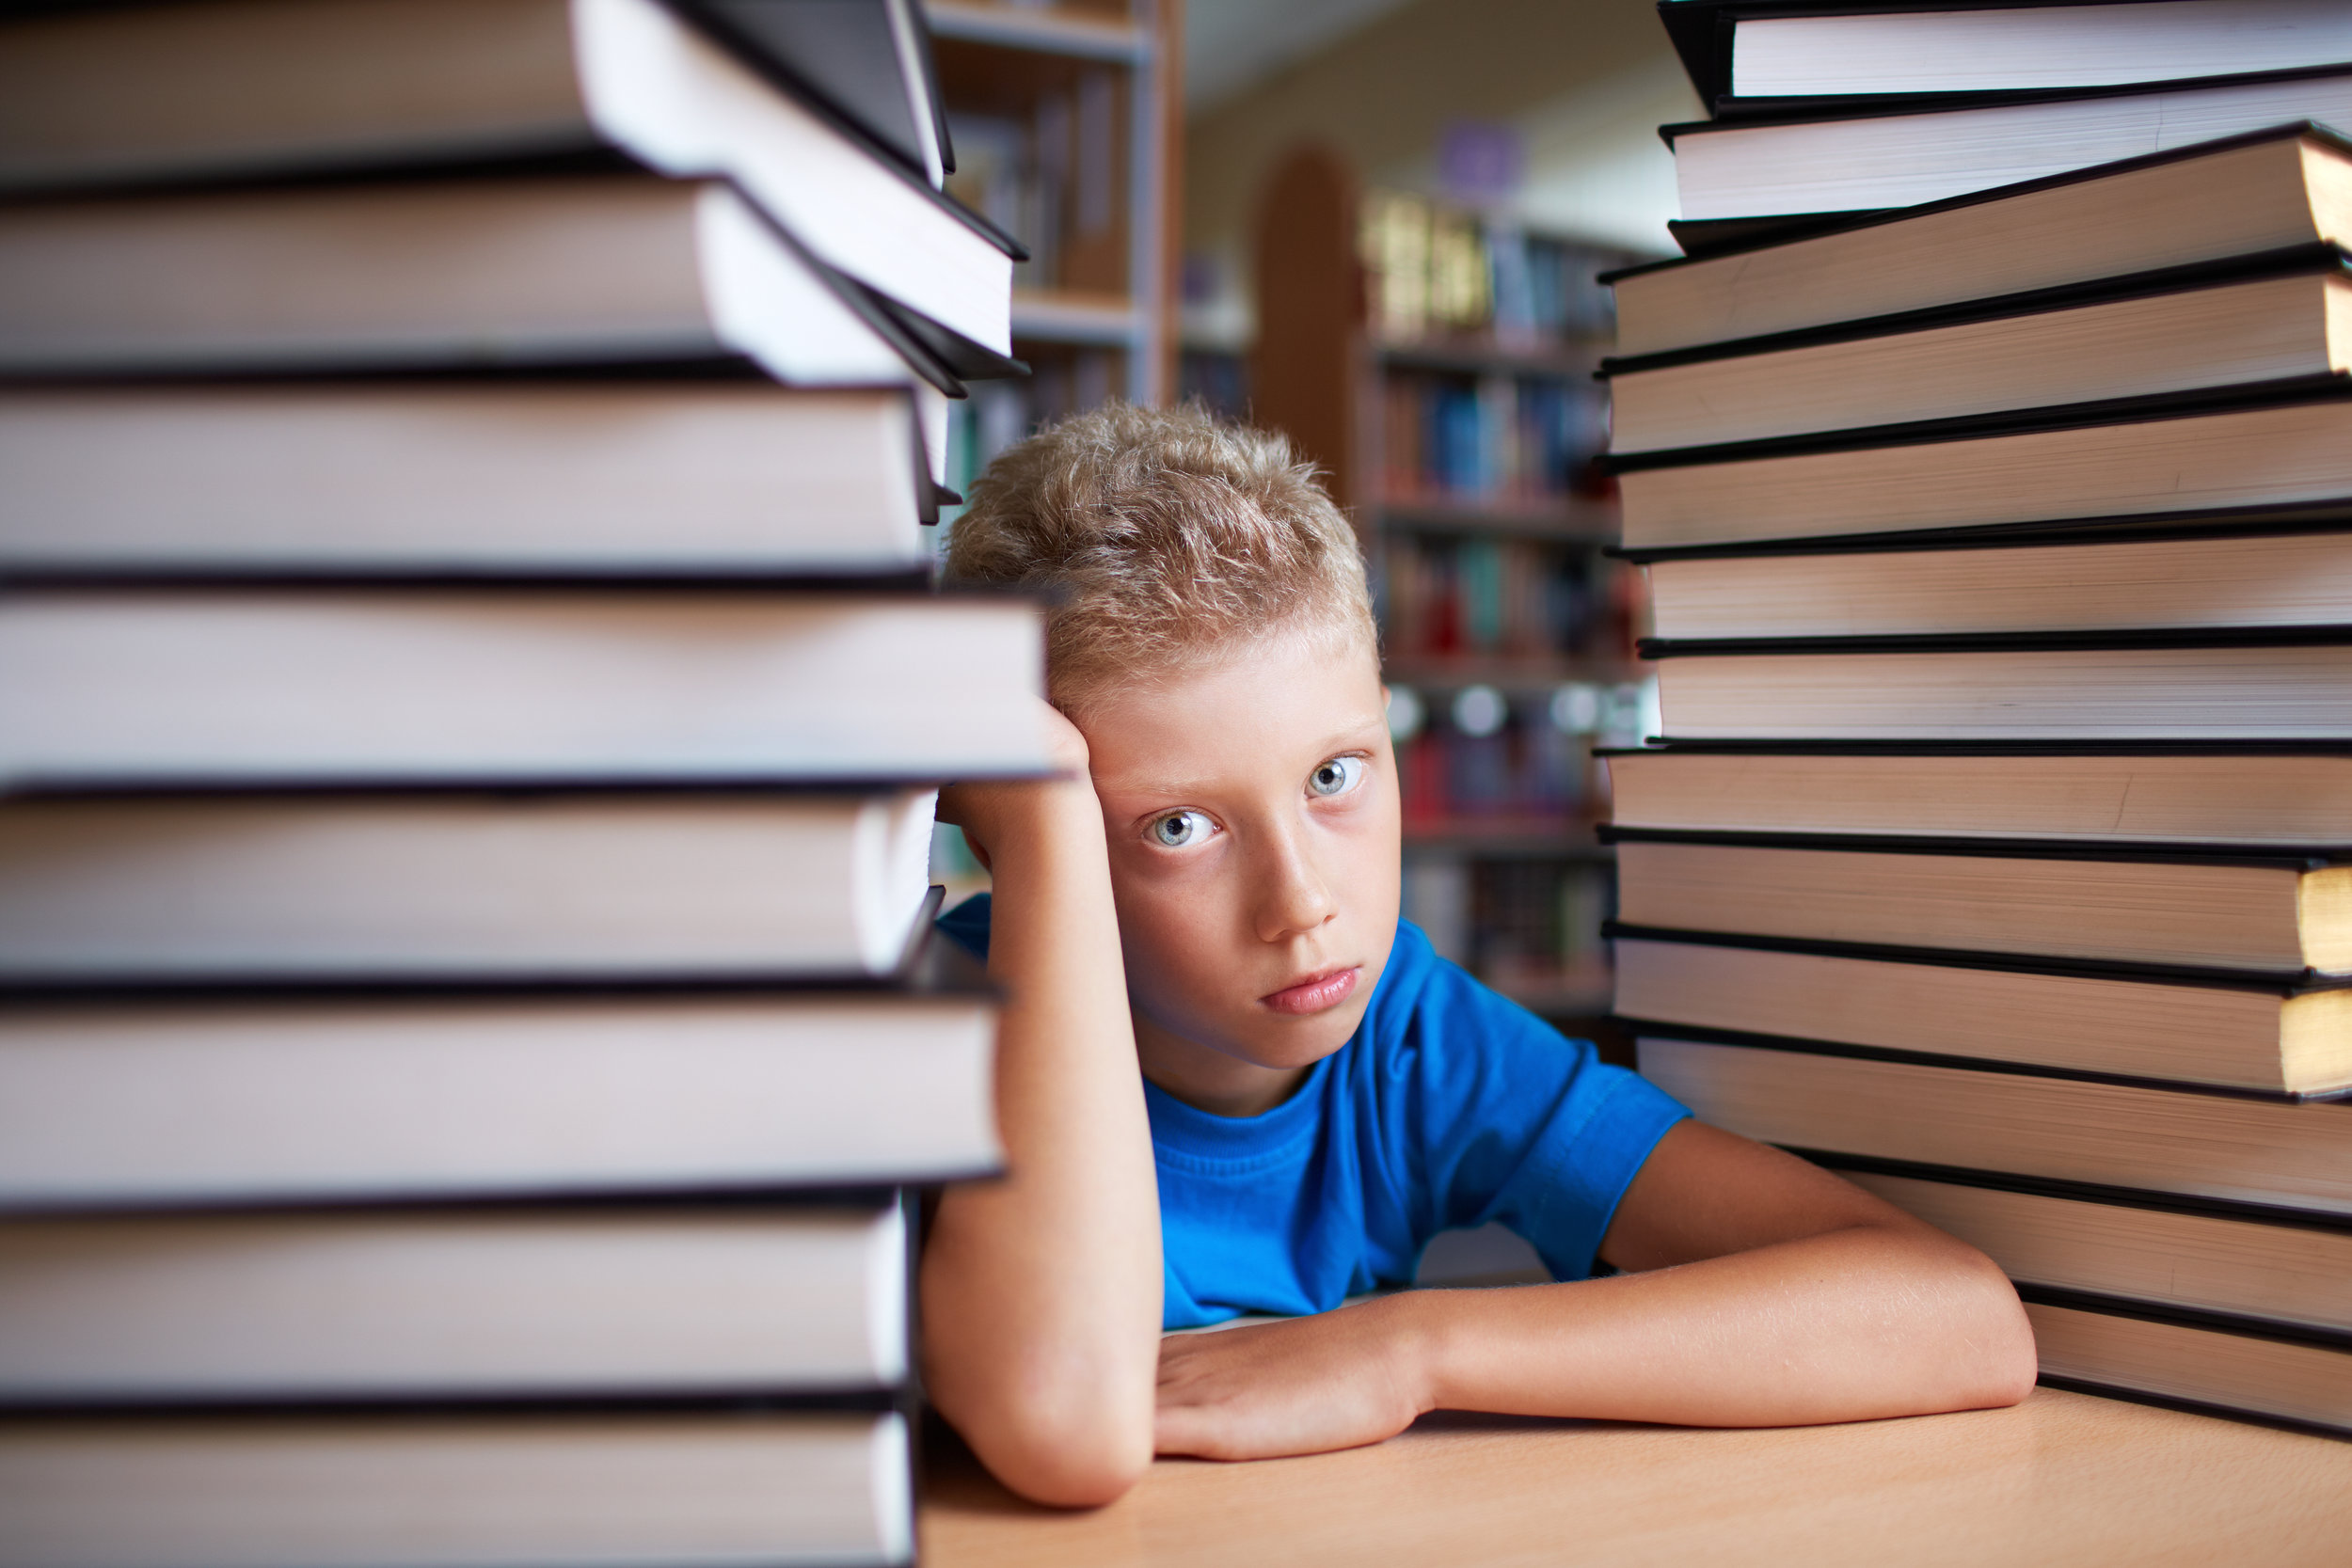 Is school more challenging than it should be? The listed behaviors may indicate a brain processing challenge.